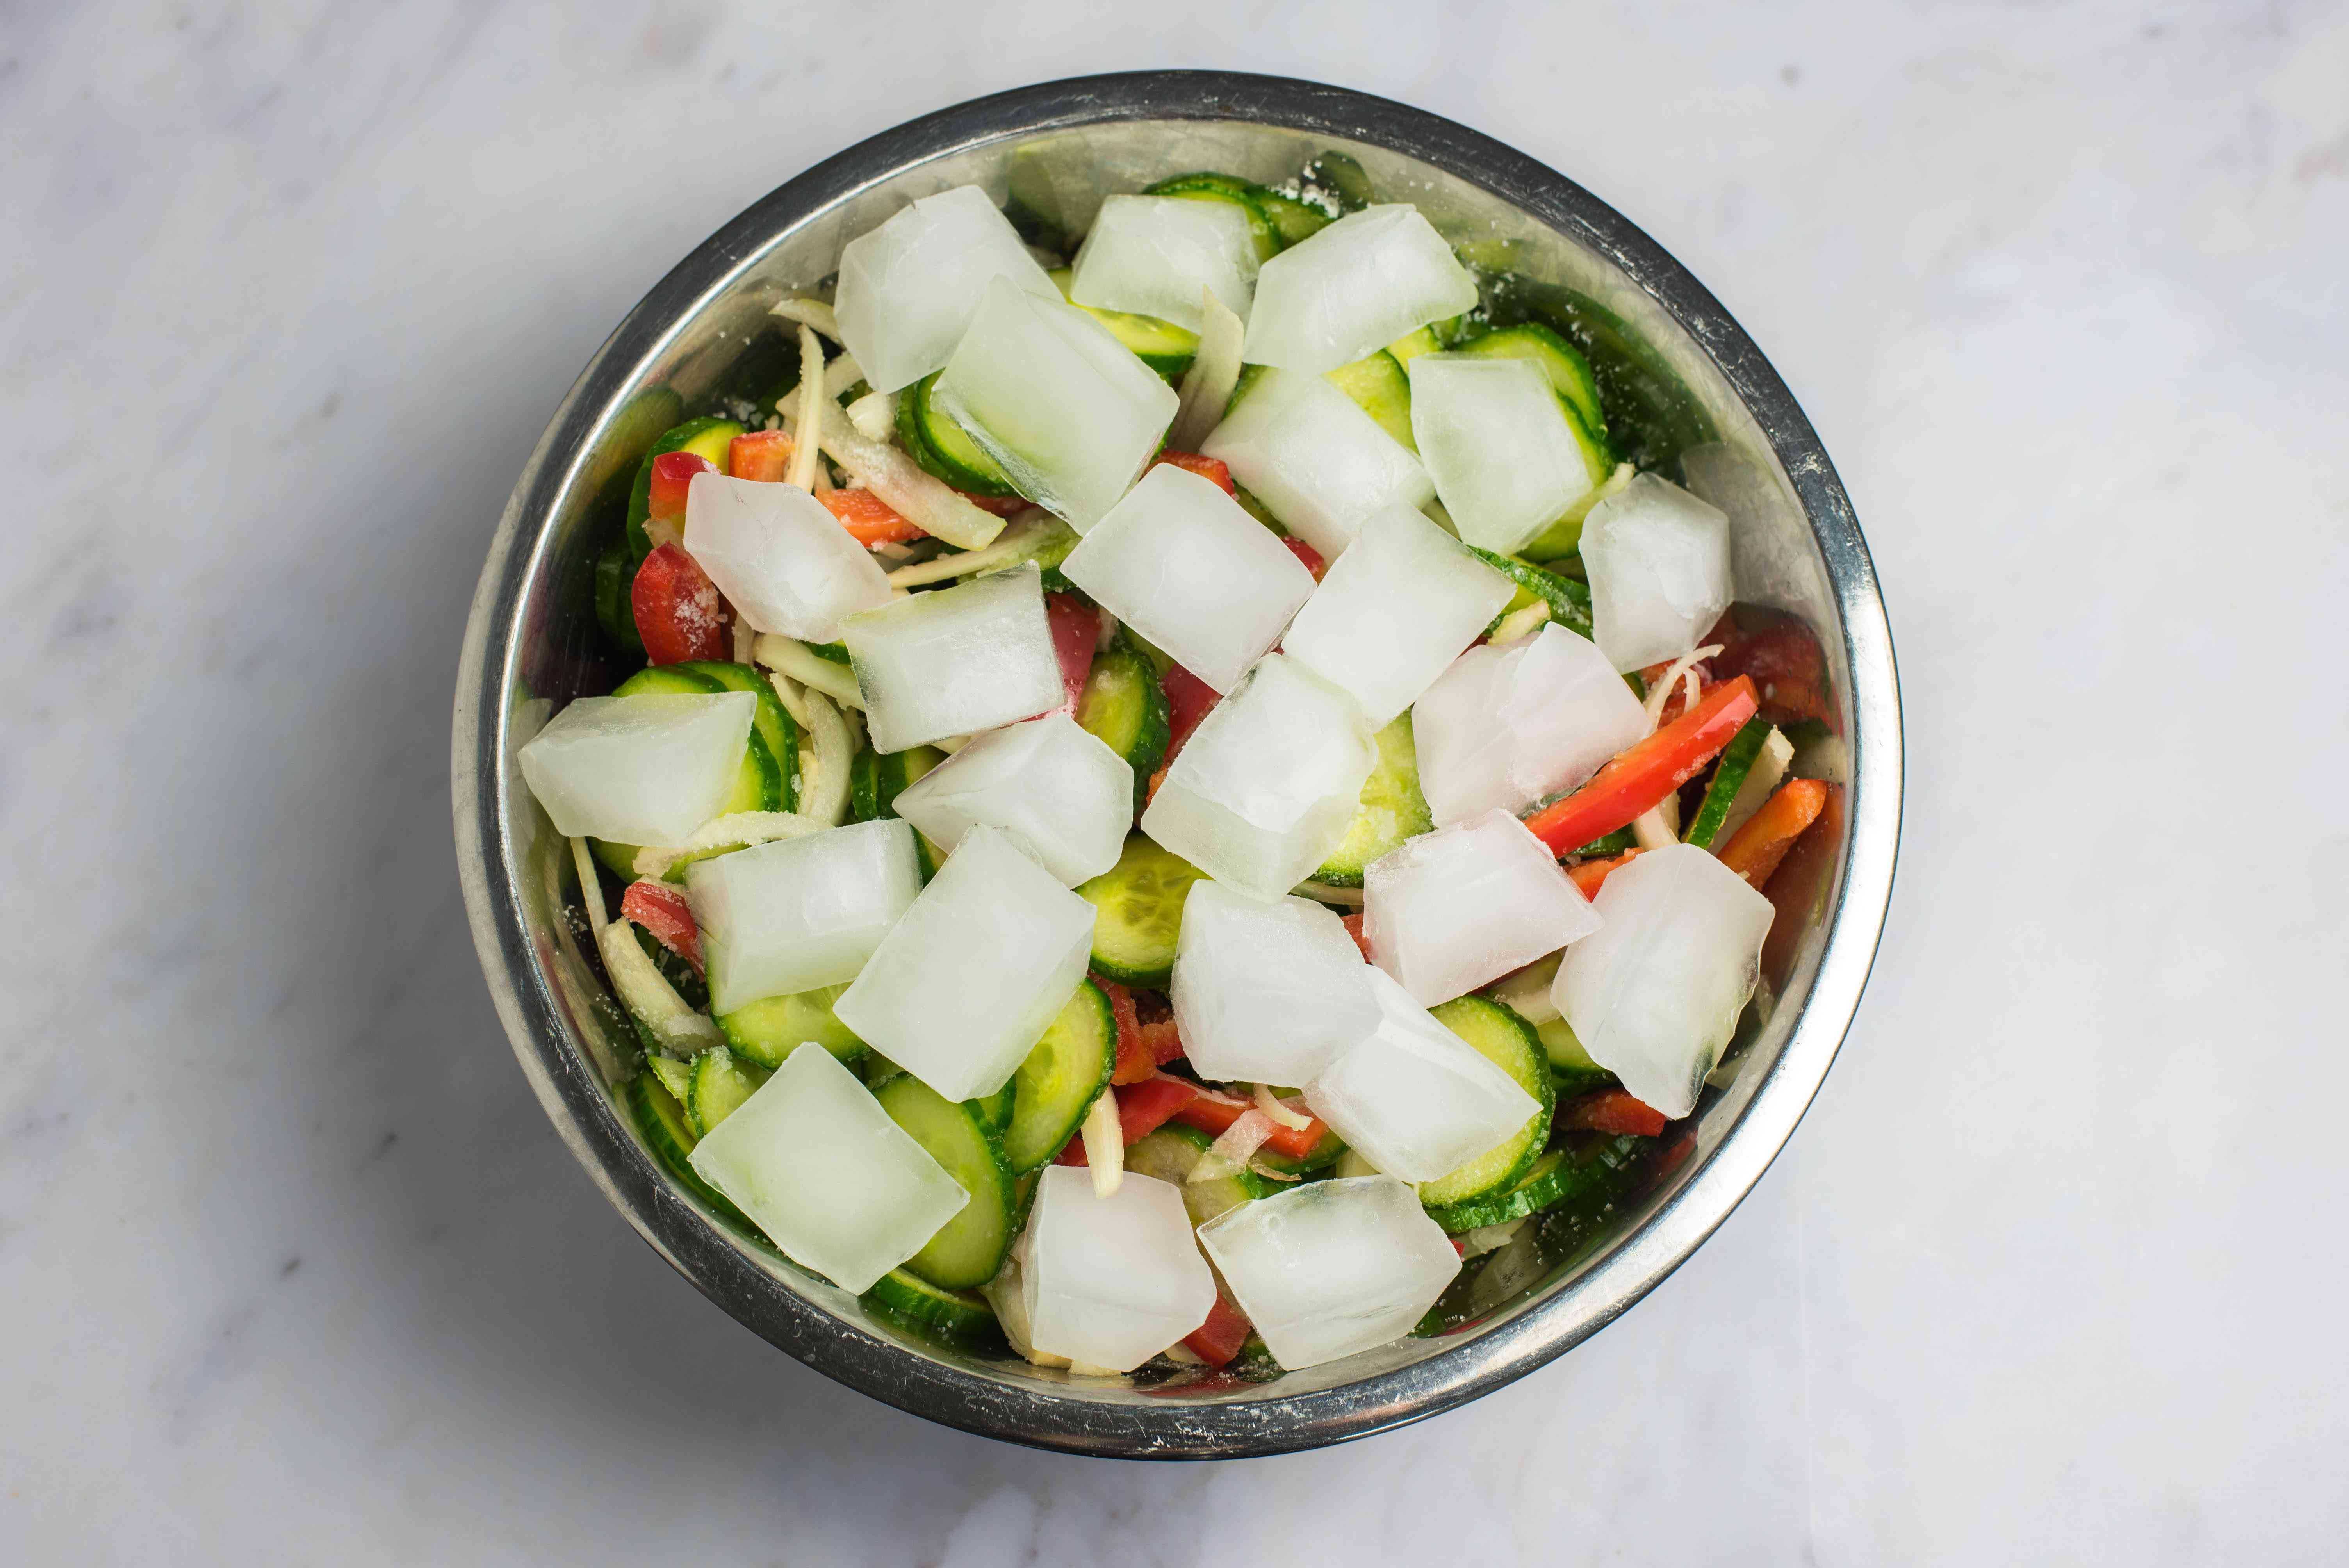 Place ice and cucumbers in stainless steel bowl